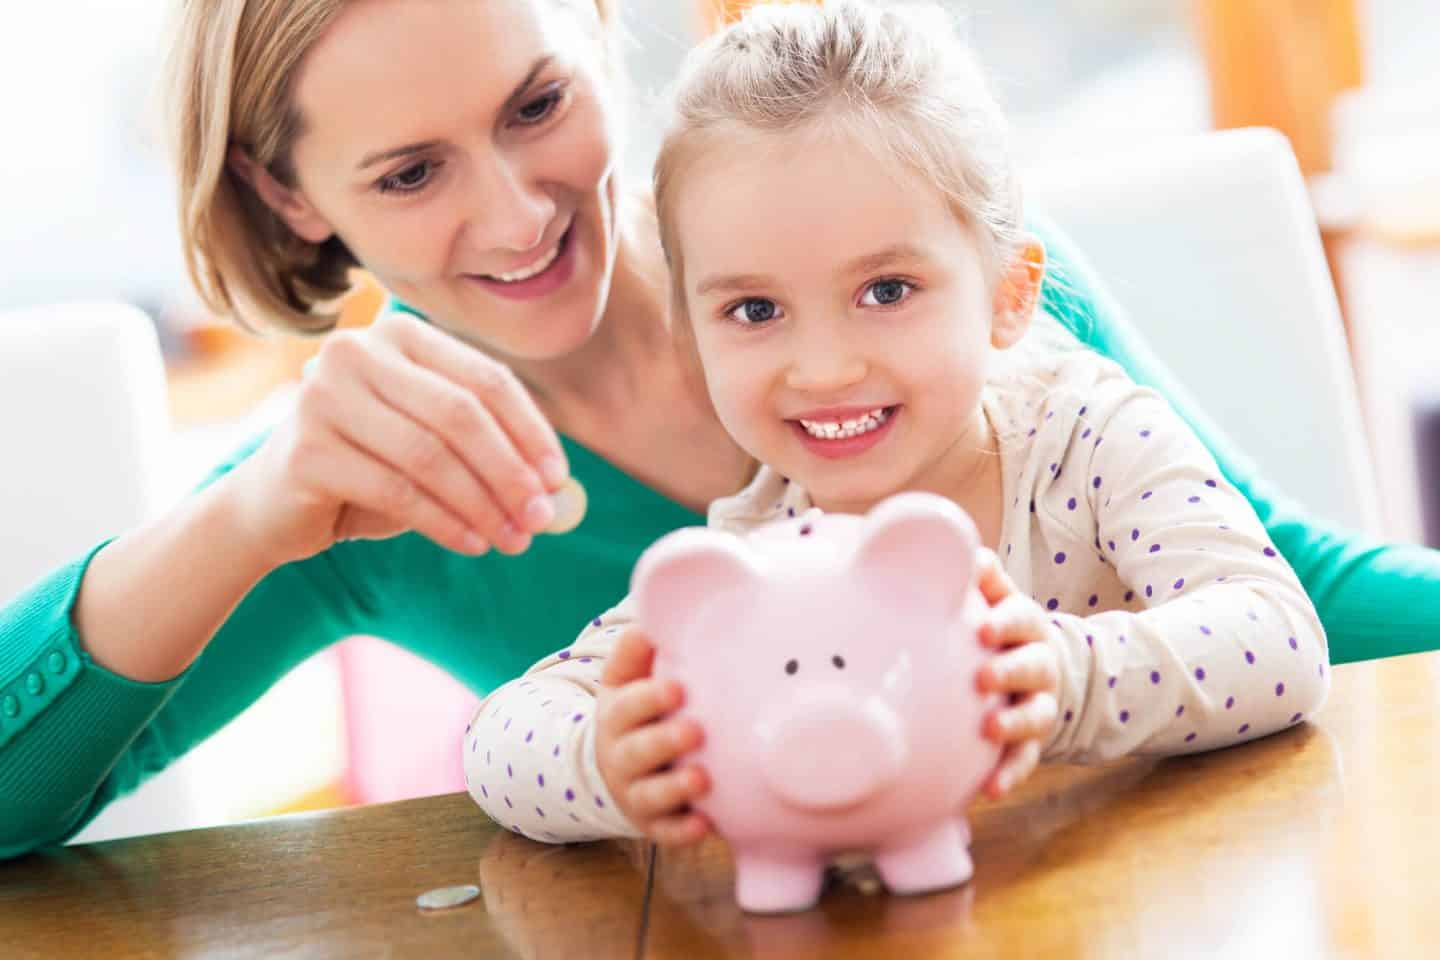 When do you need to start thinking about your child's finances